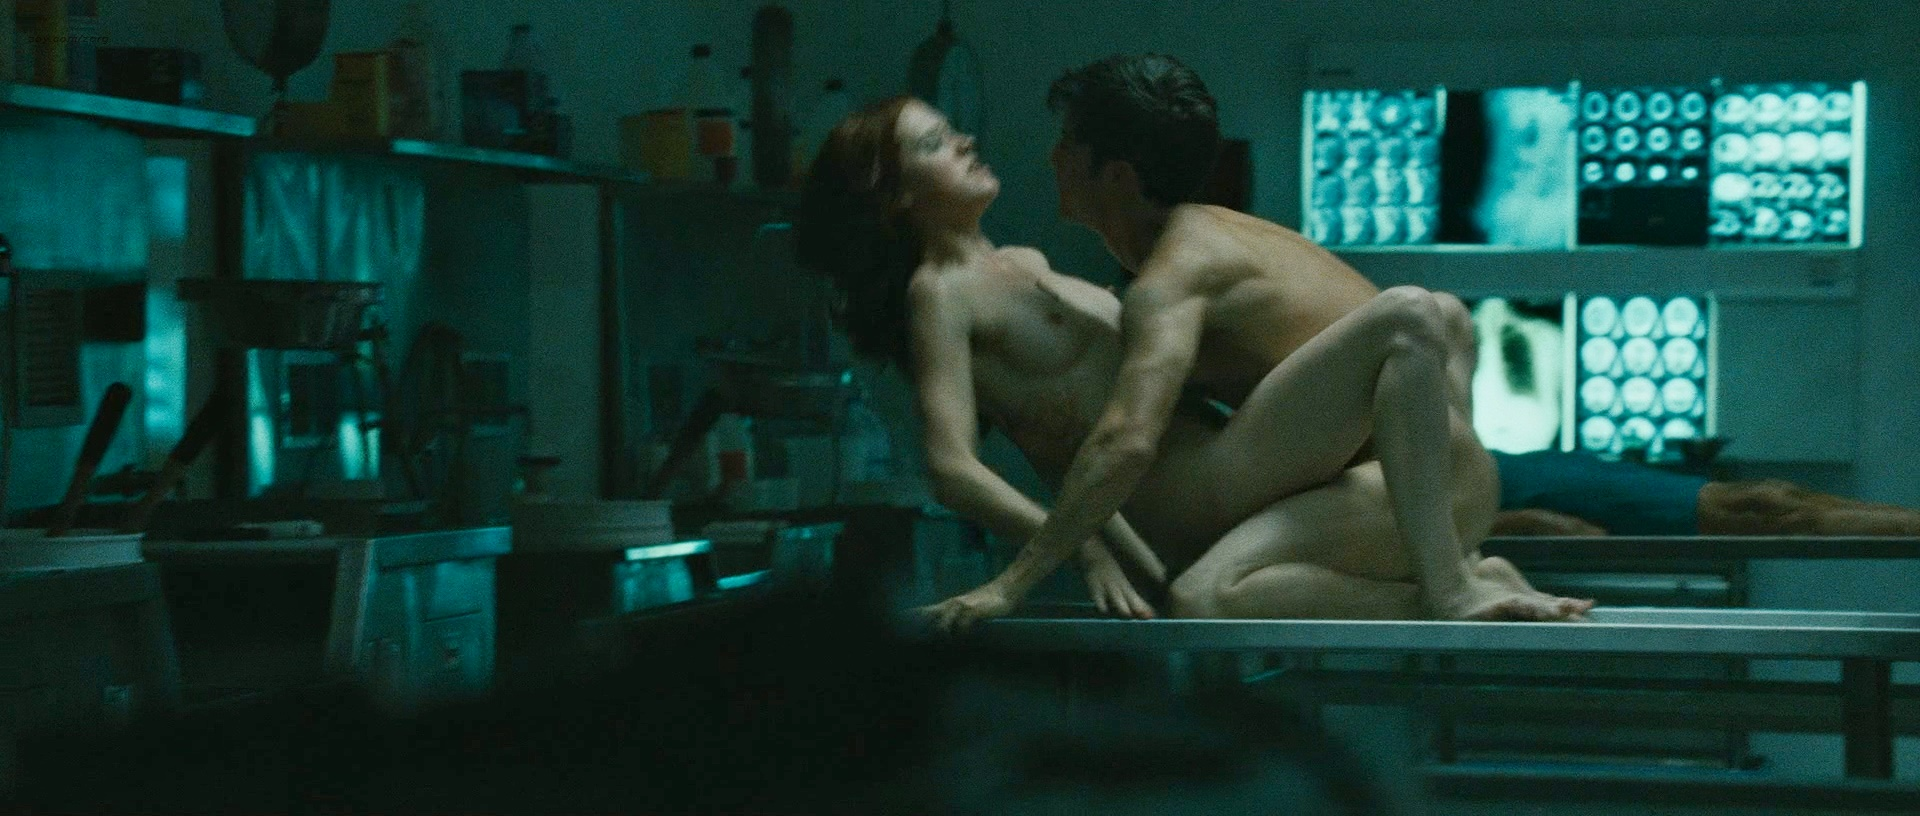 Alyssa Milano nude and bush and Lauren Lee Smith nude topless and sex - Pathology (2008) hd720/1080p (10)